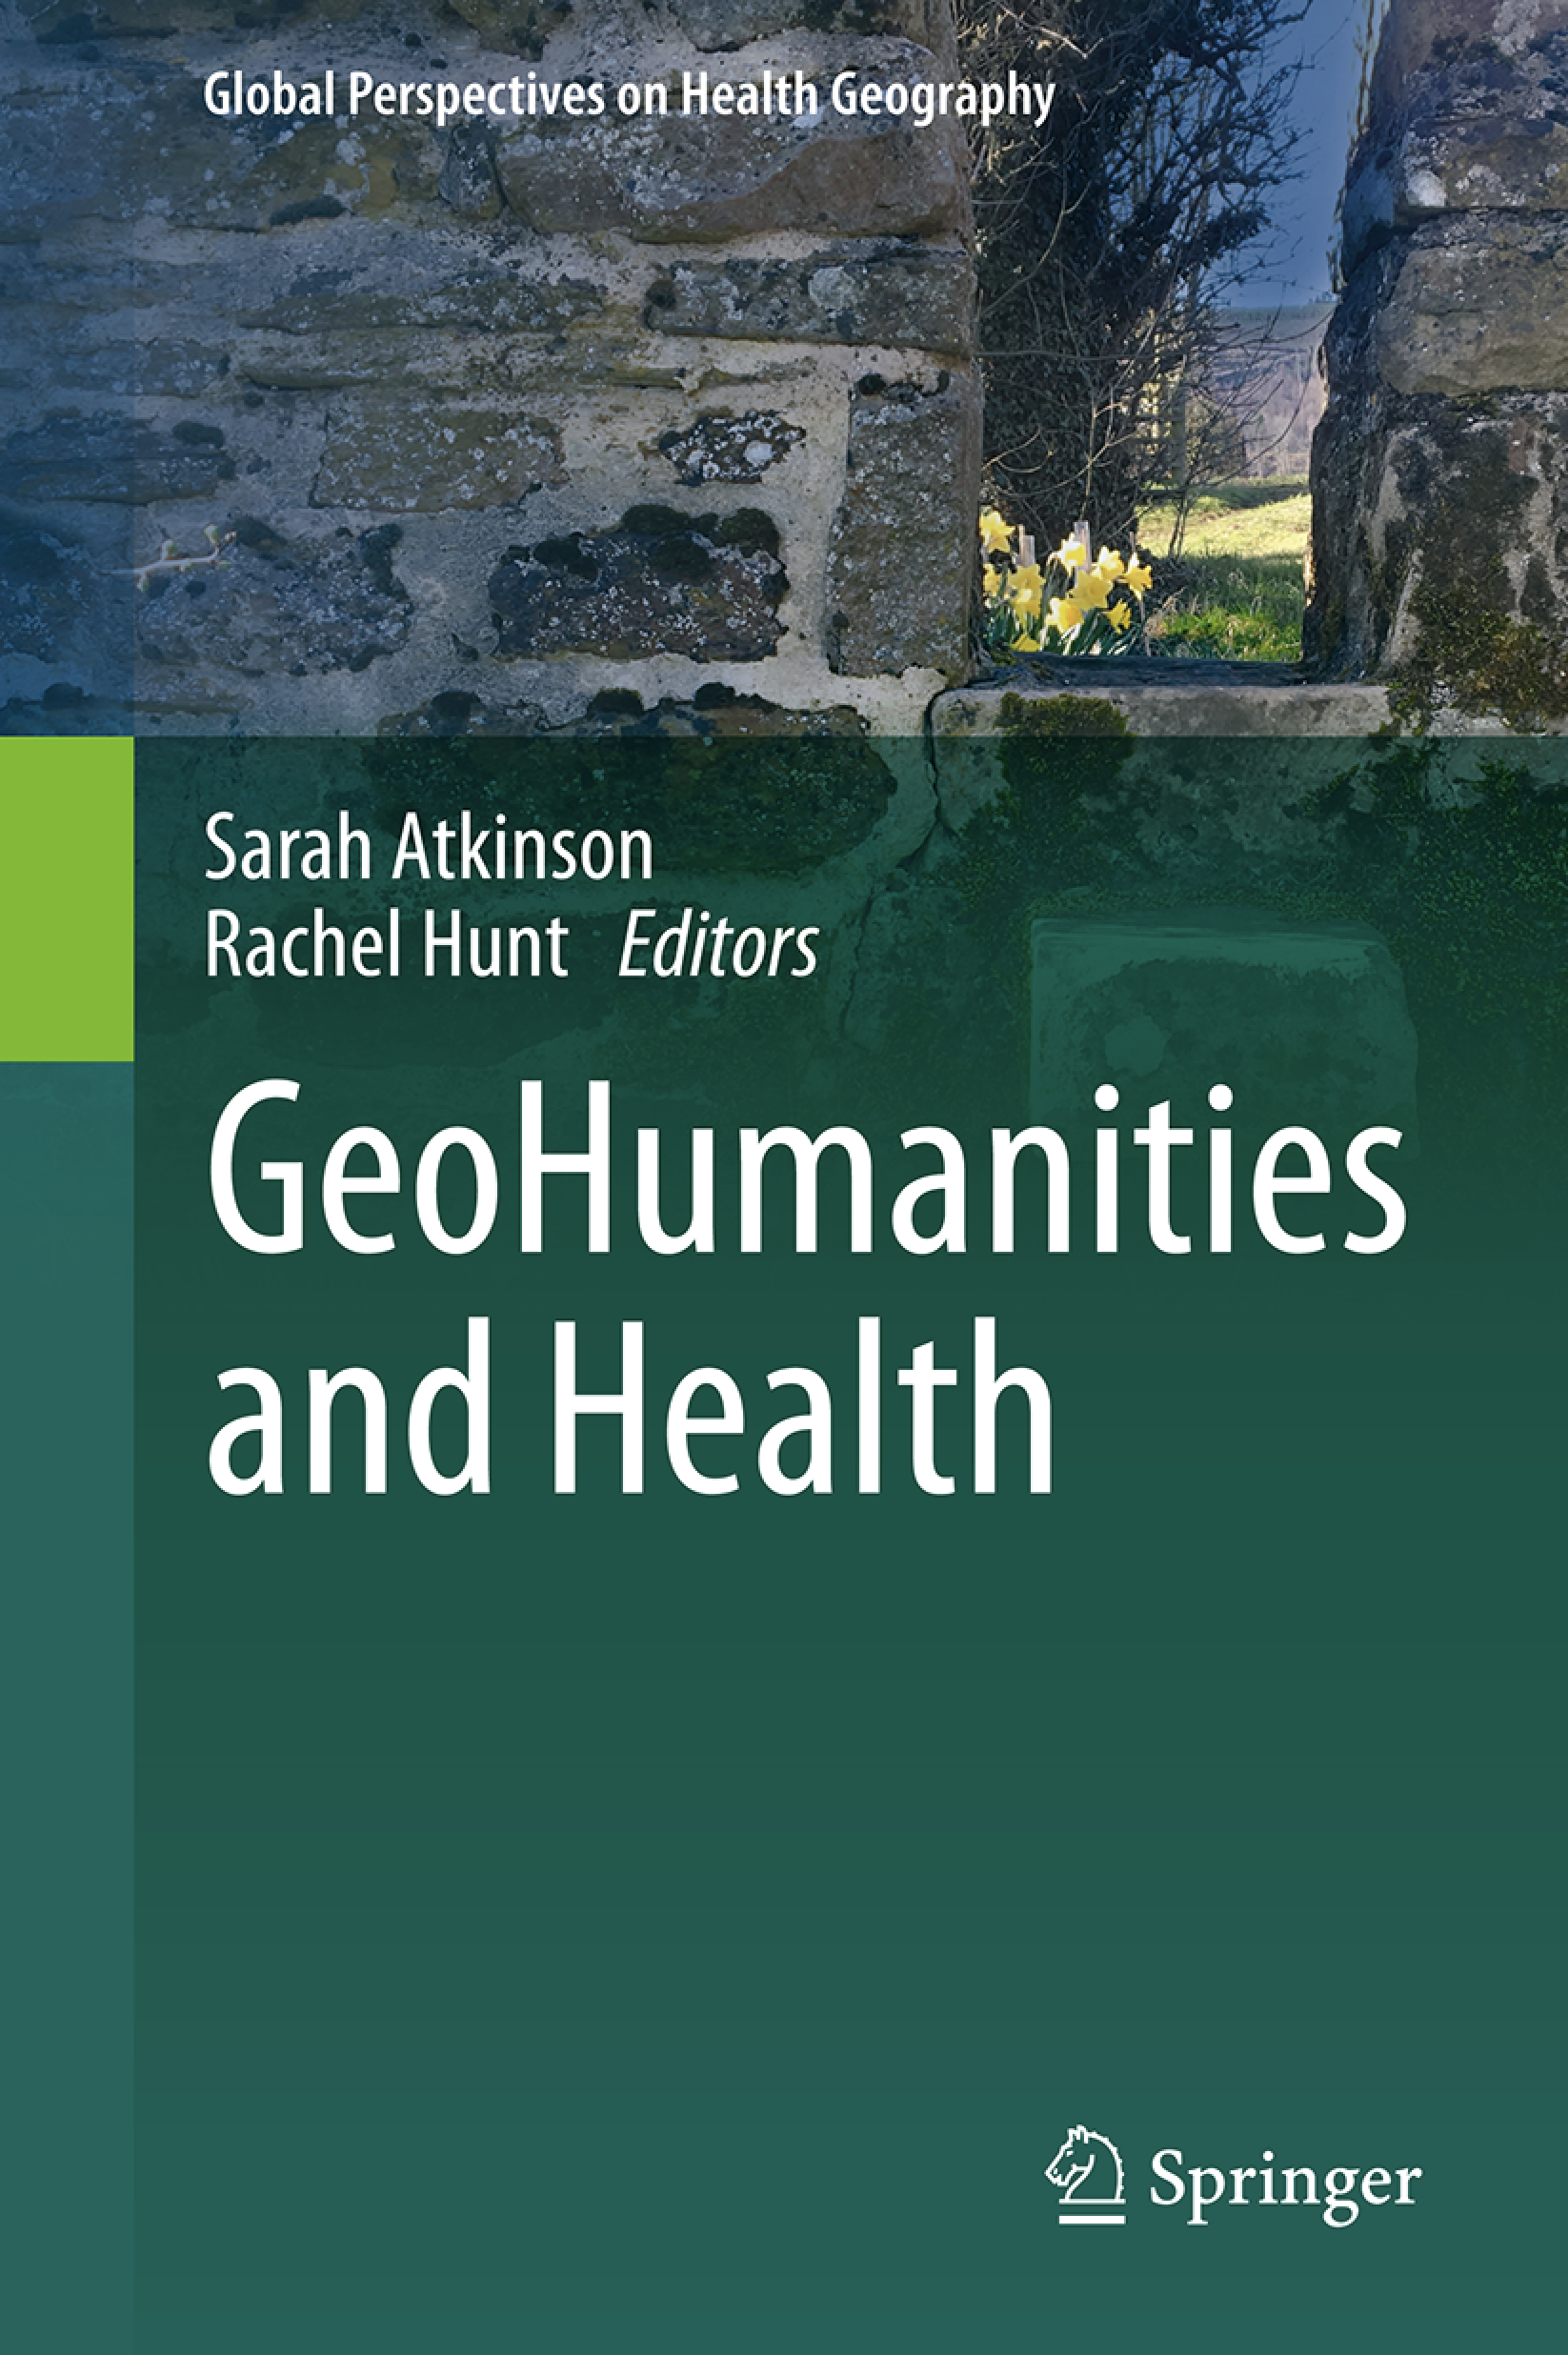 Book Chapter in Geohumanities and Health